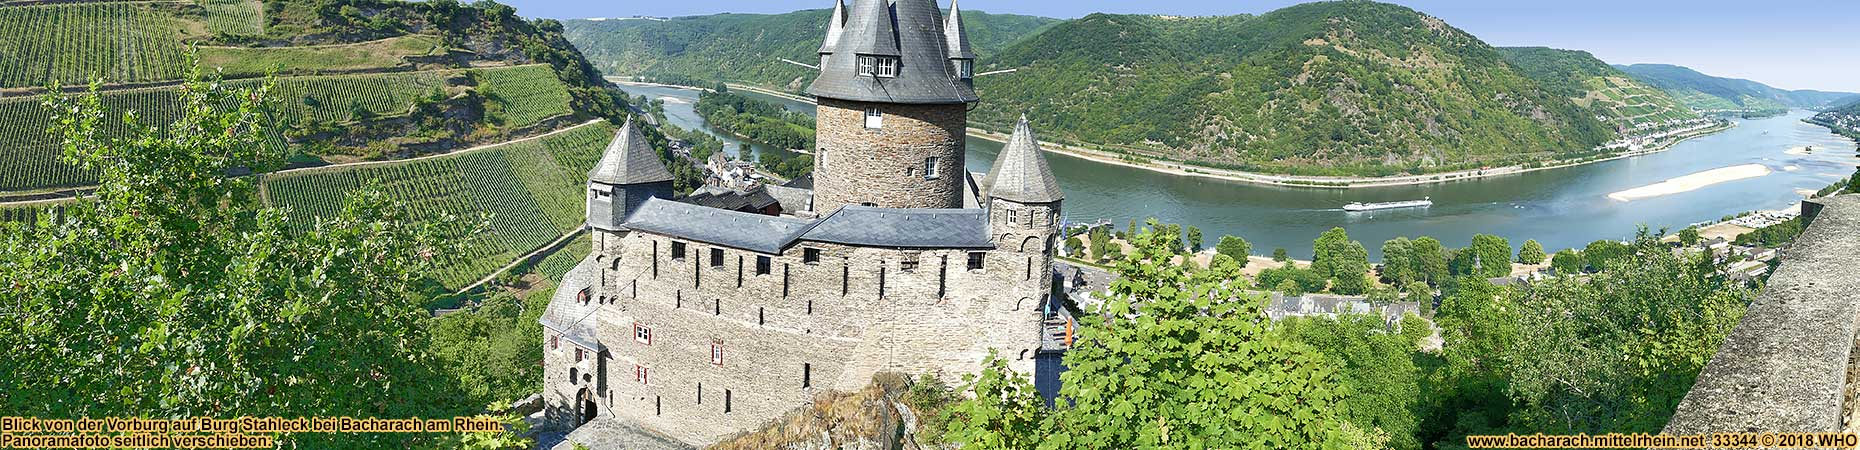 Castle Stahleck above Bacharach on the Rhine River